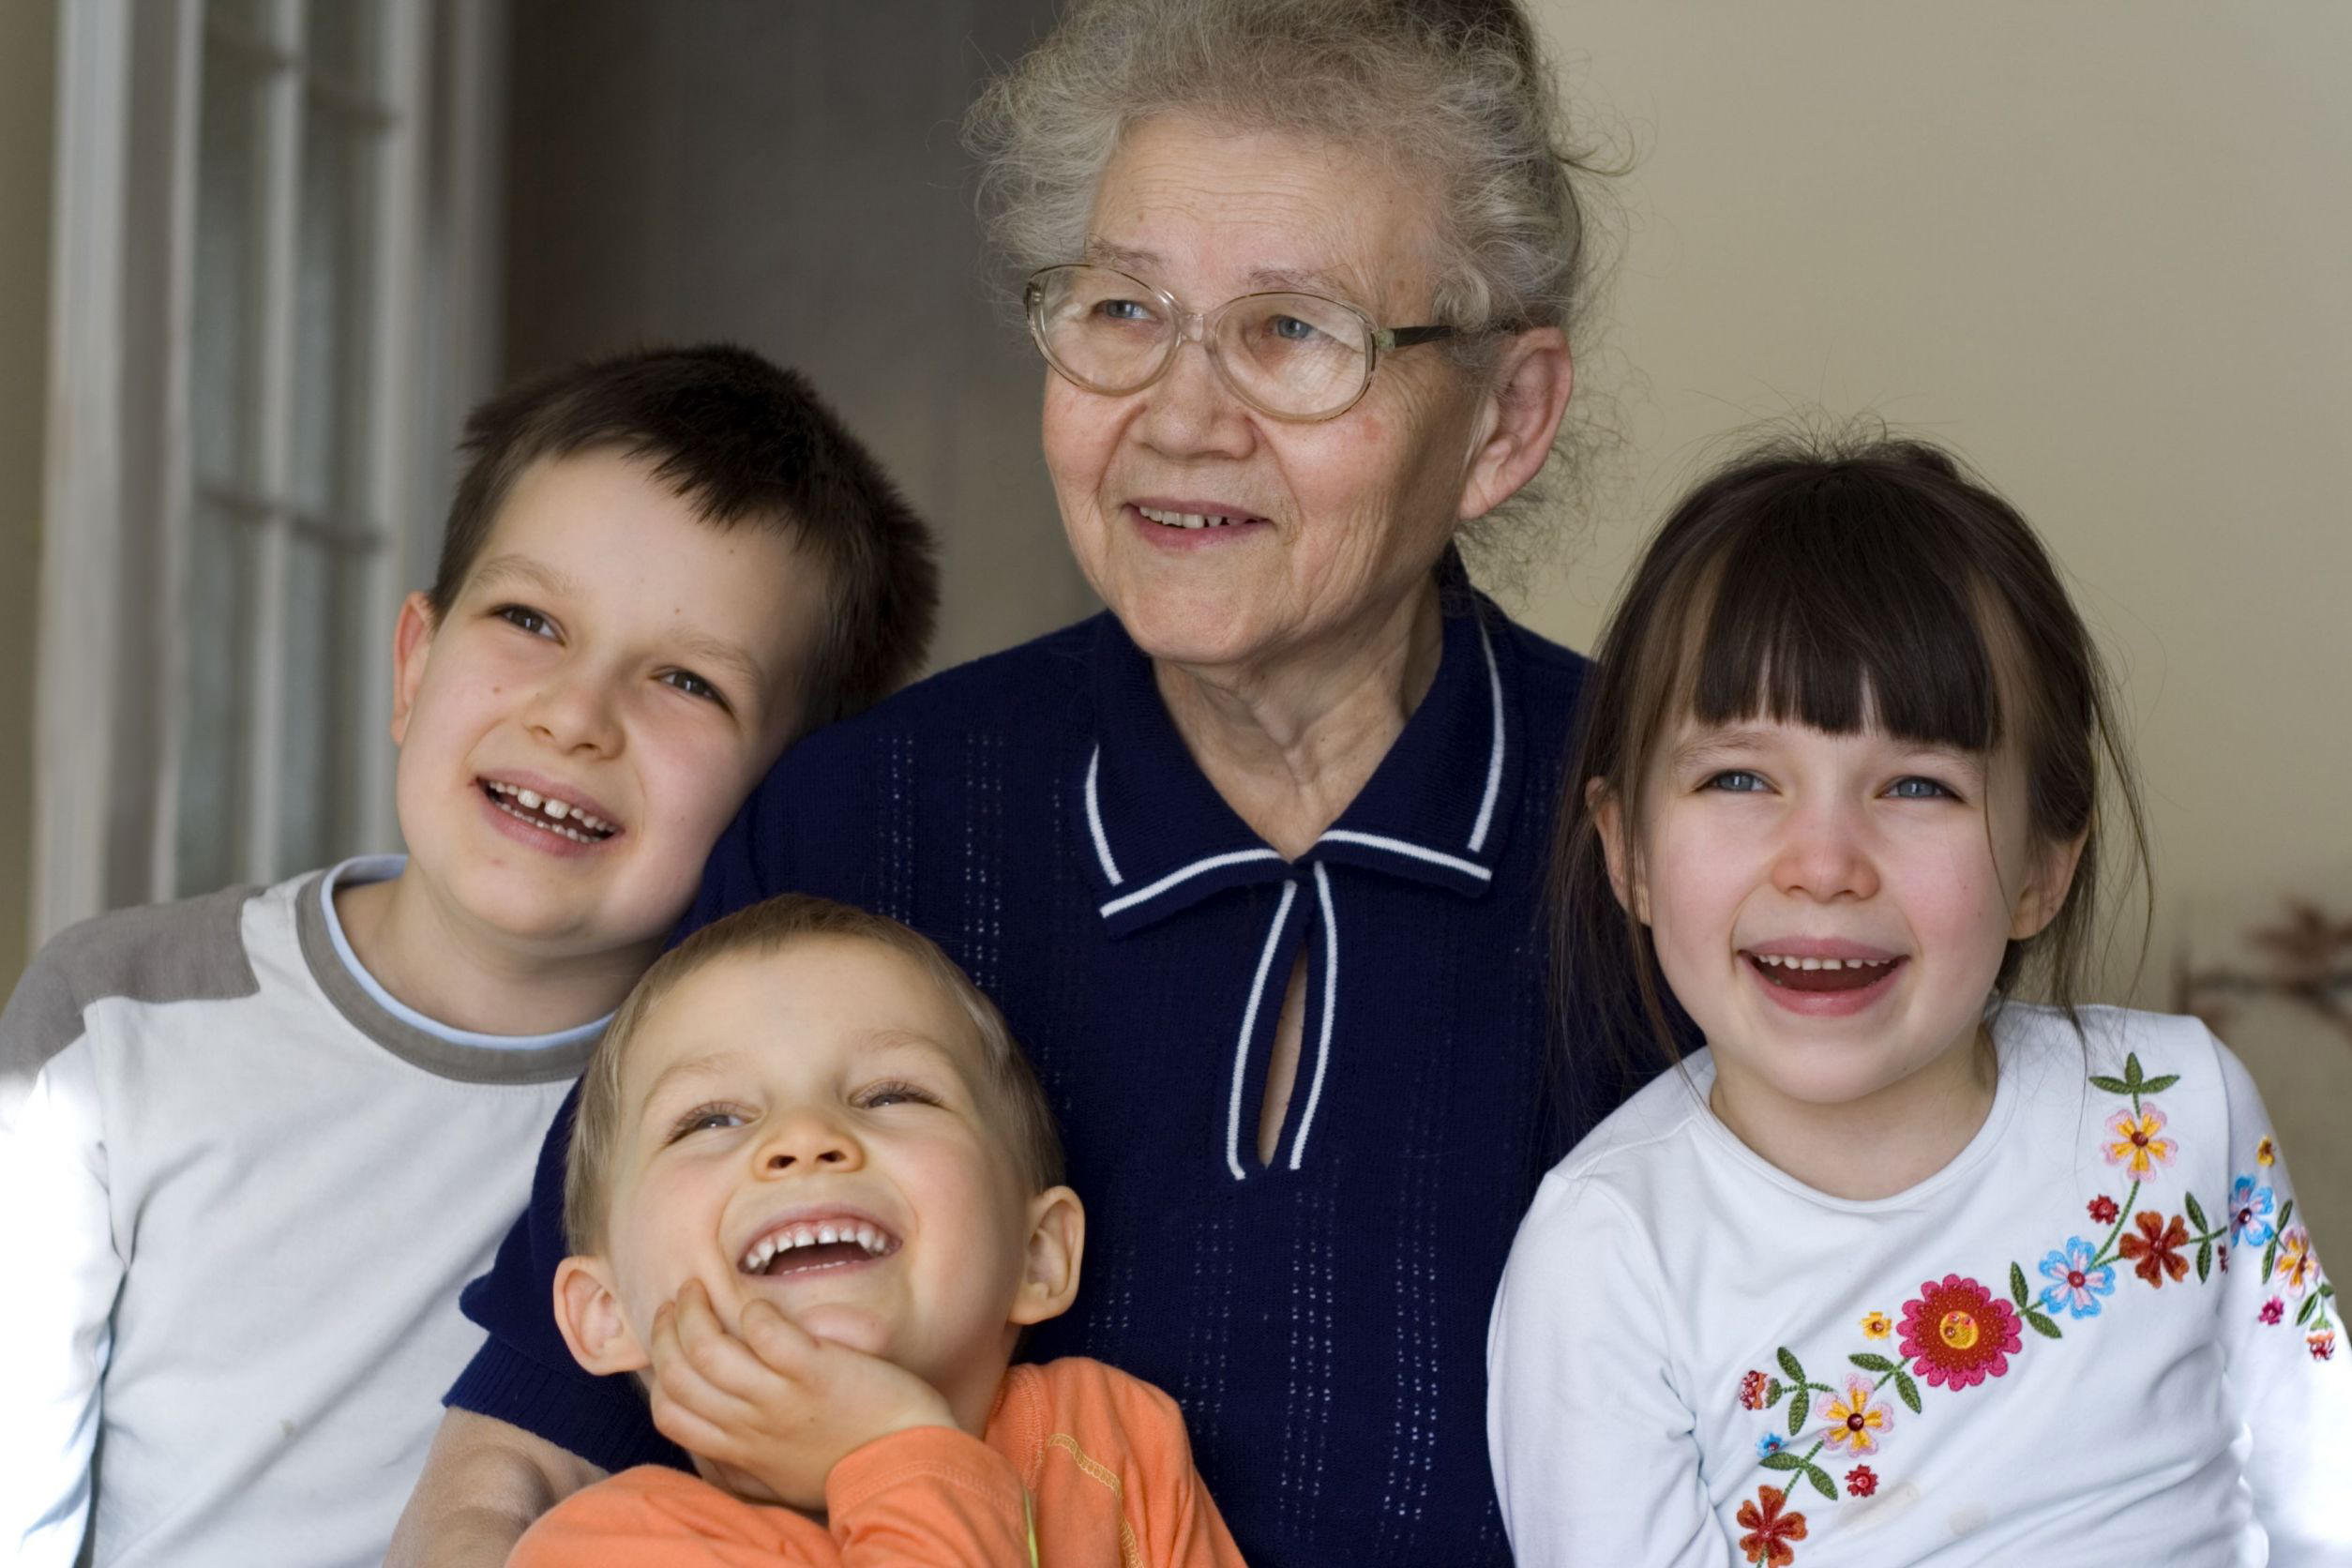 Grandmother with grandchildren laughing